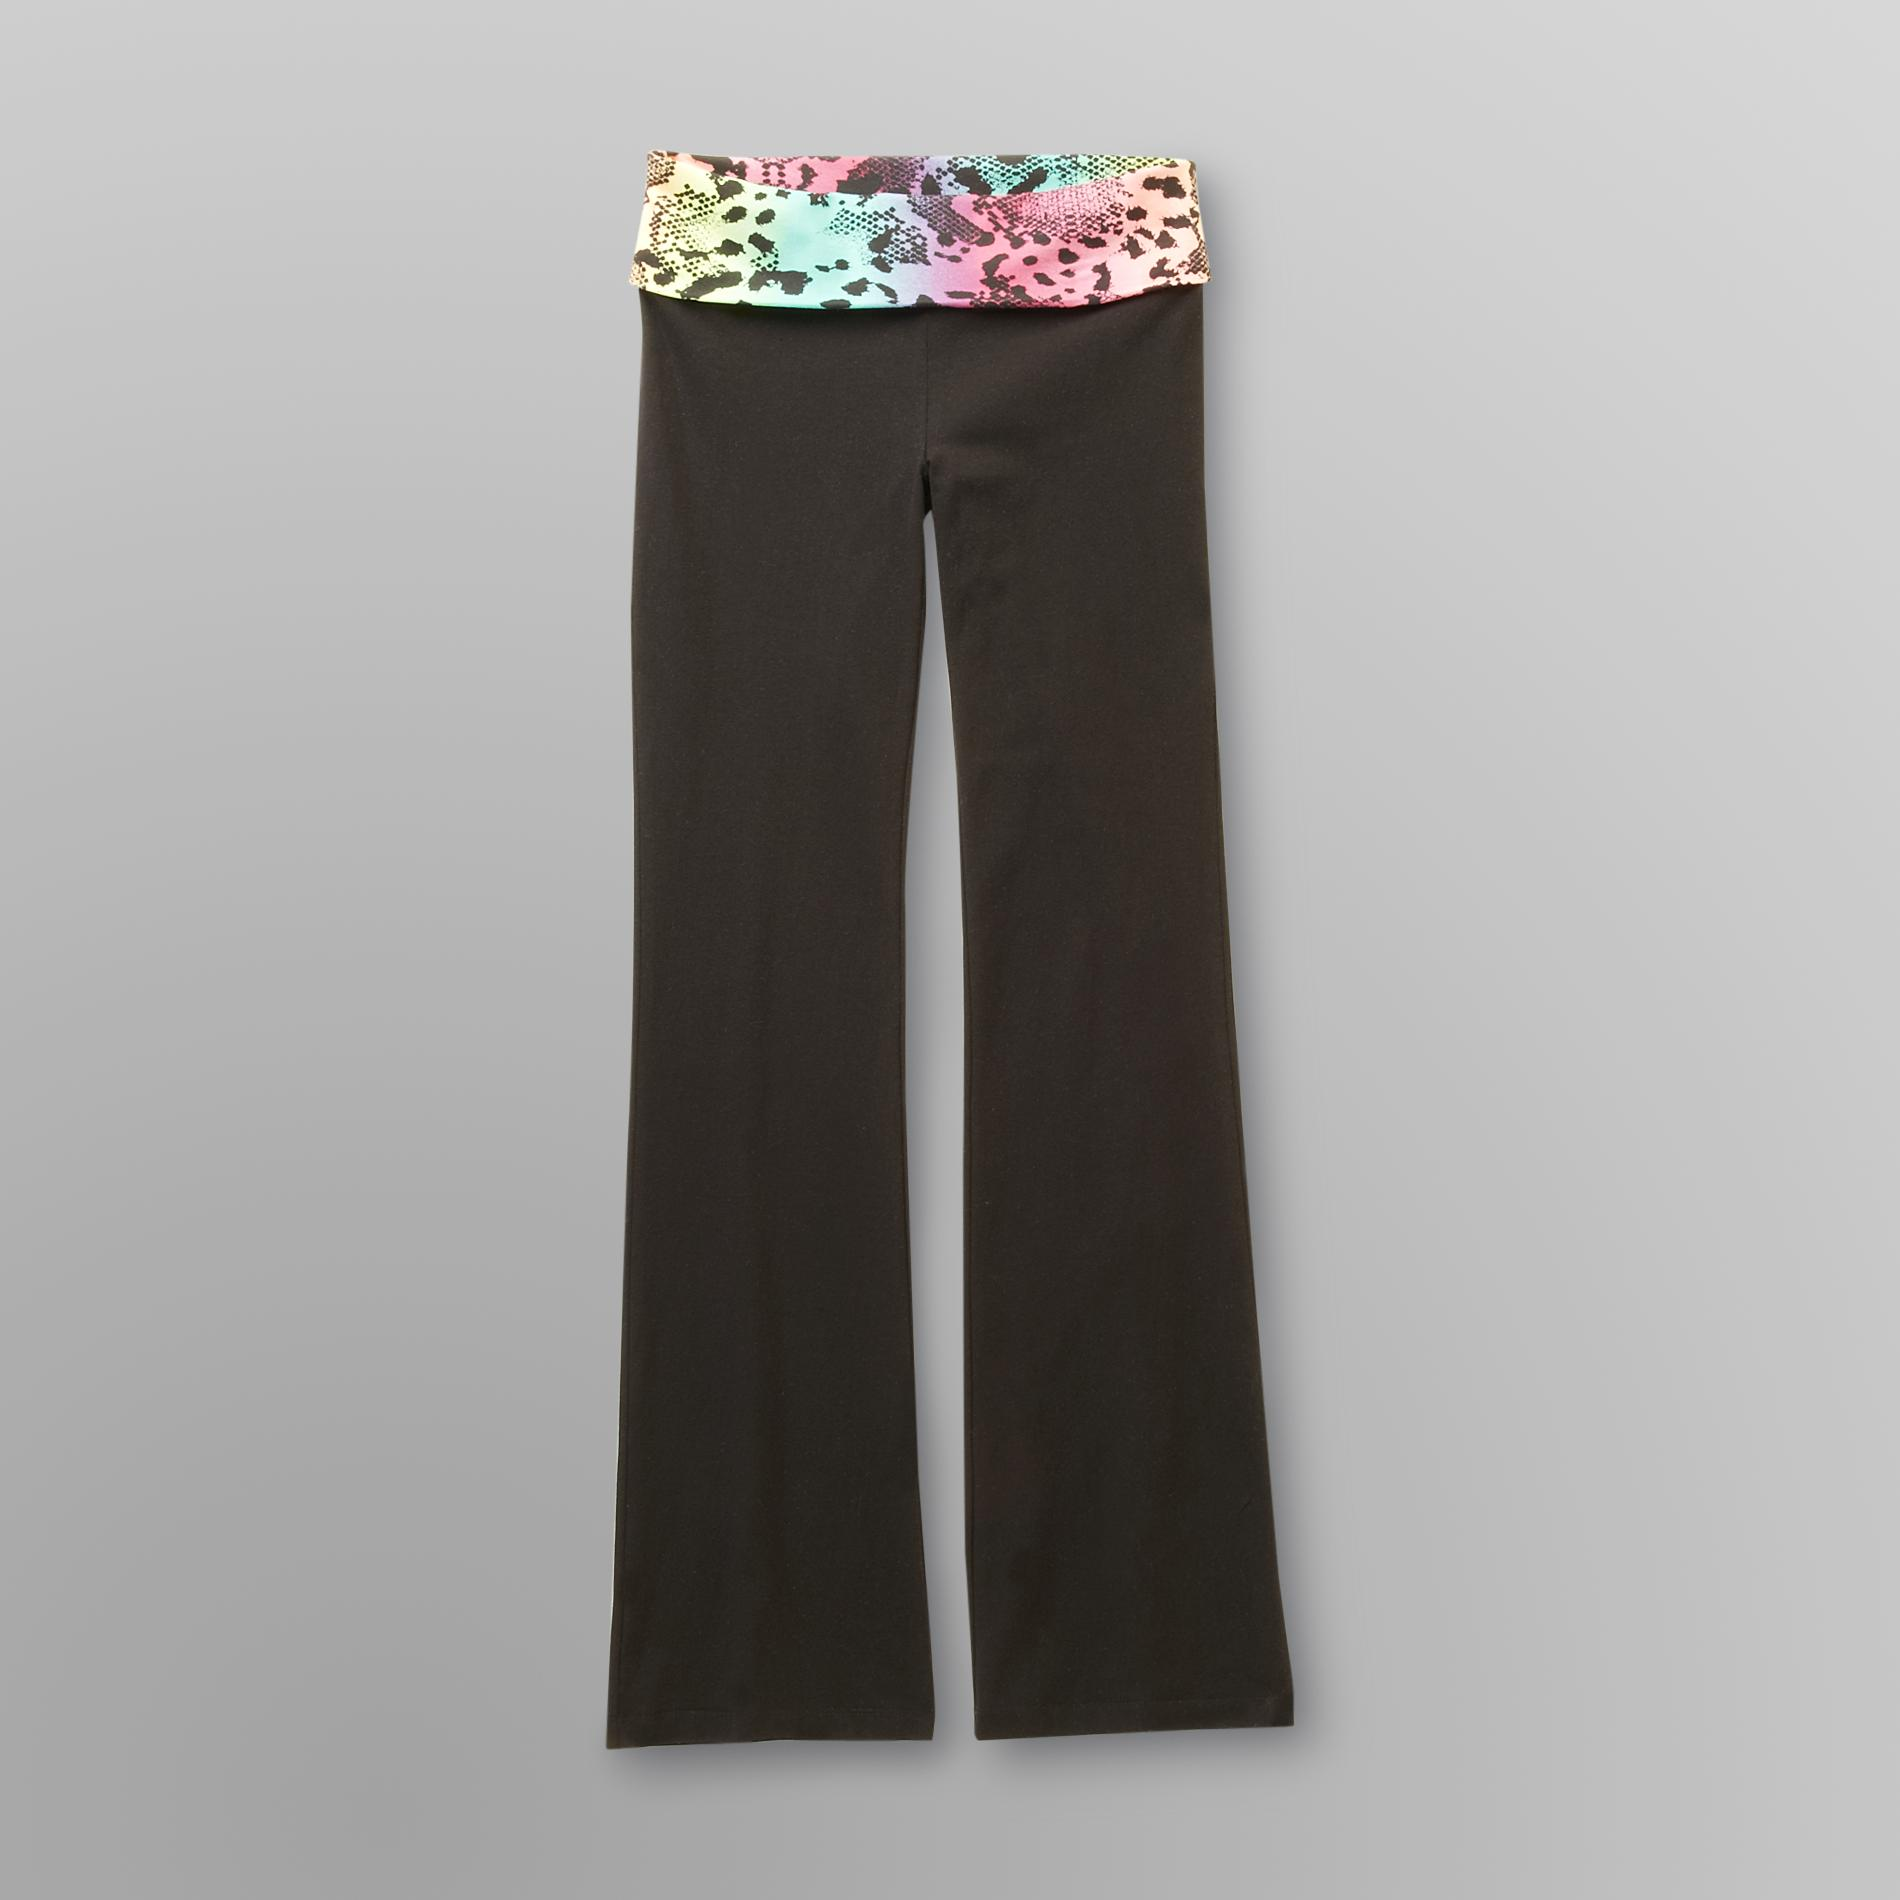 Joe Boxer Women's Foil Snake Yoga Pants at Kmart.com